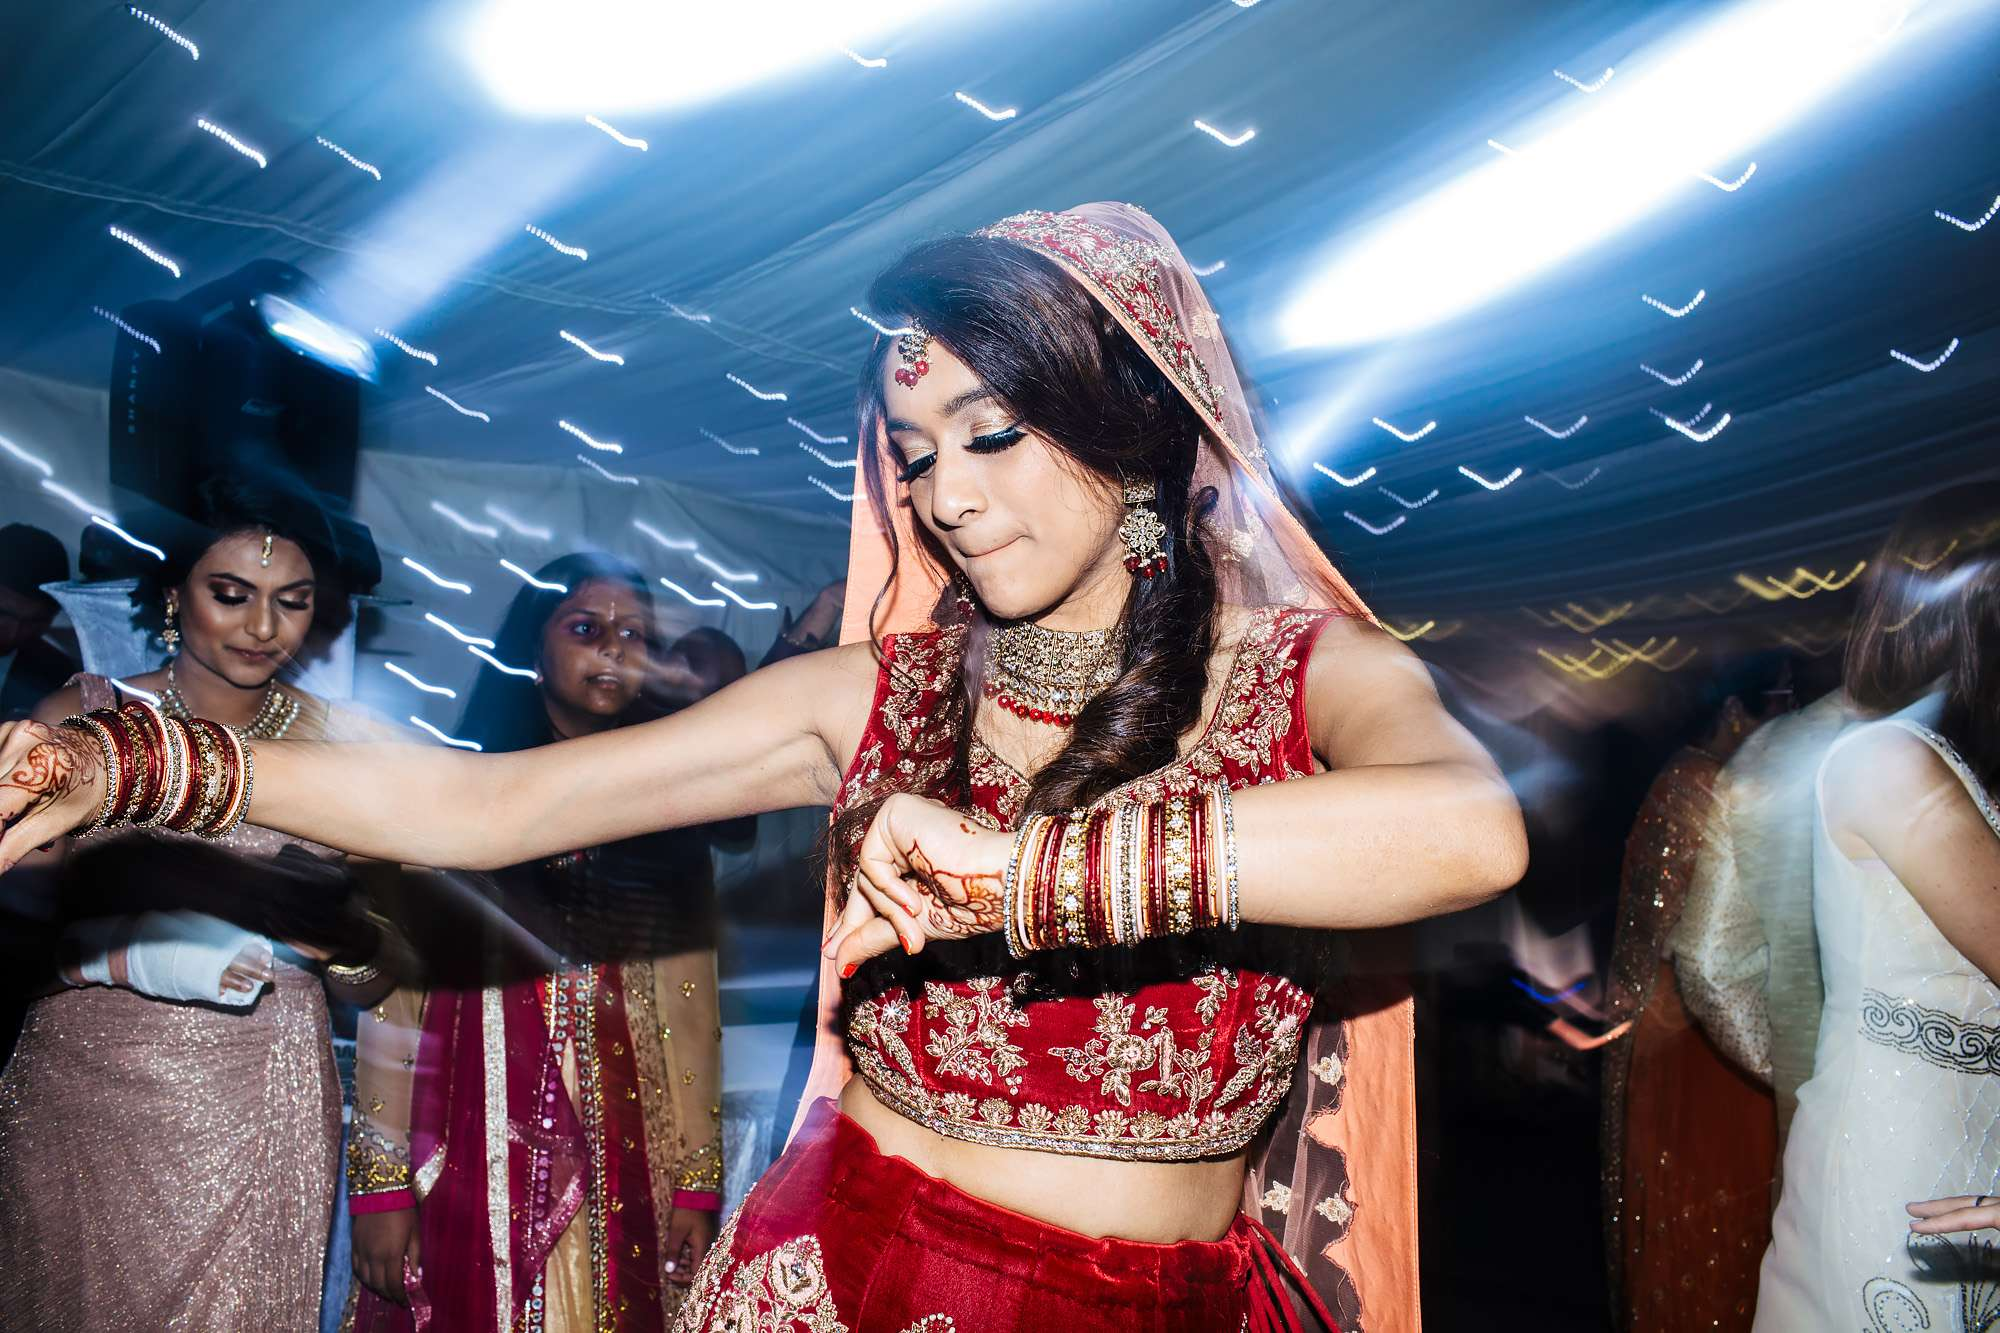 Asian bride dancing at her wedding